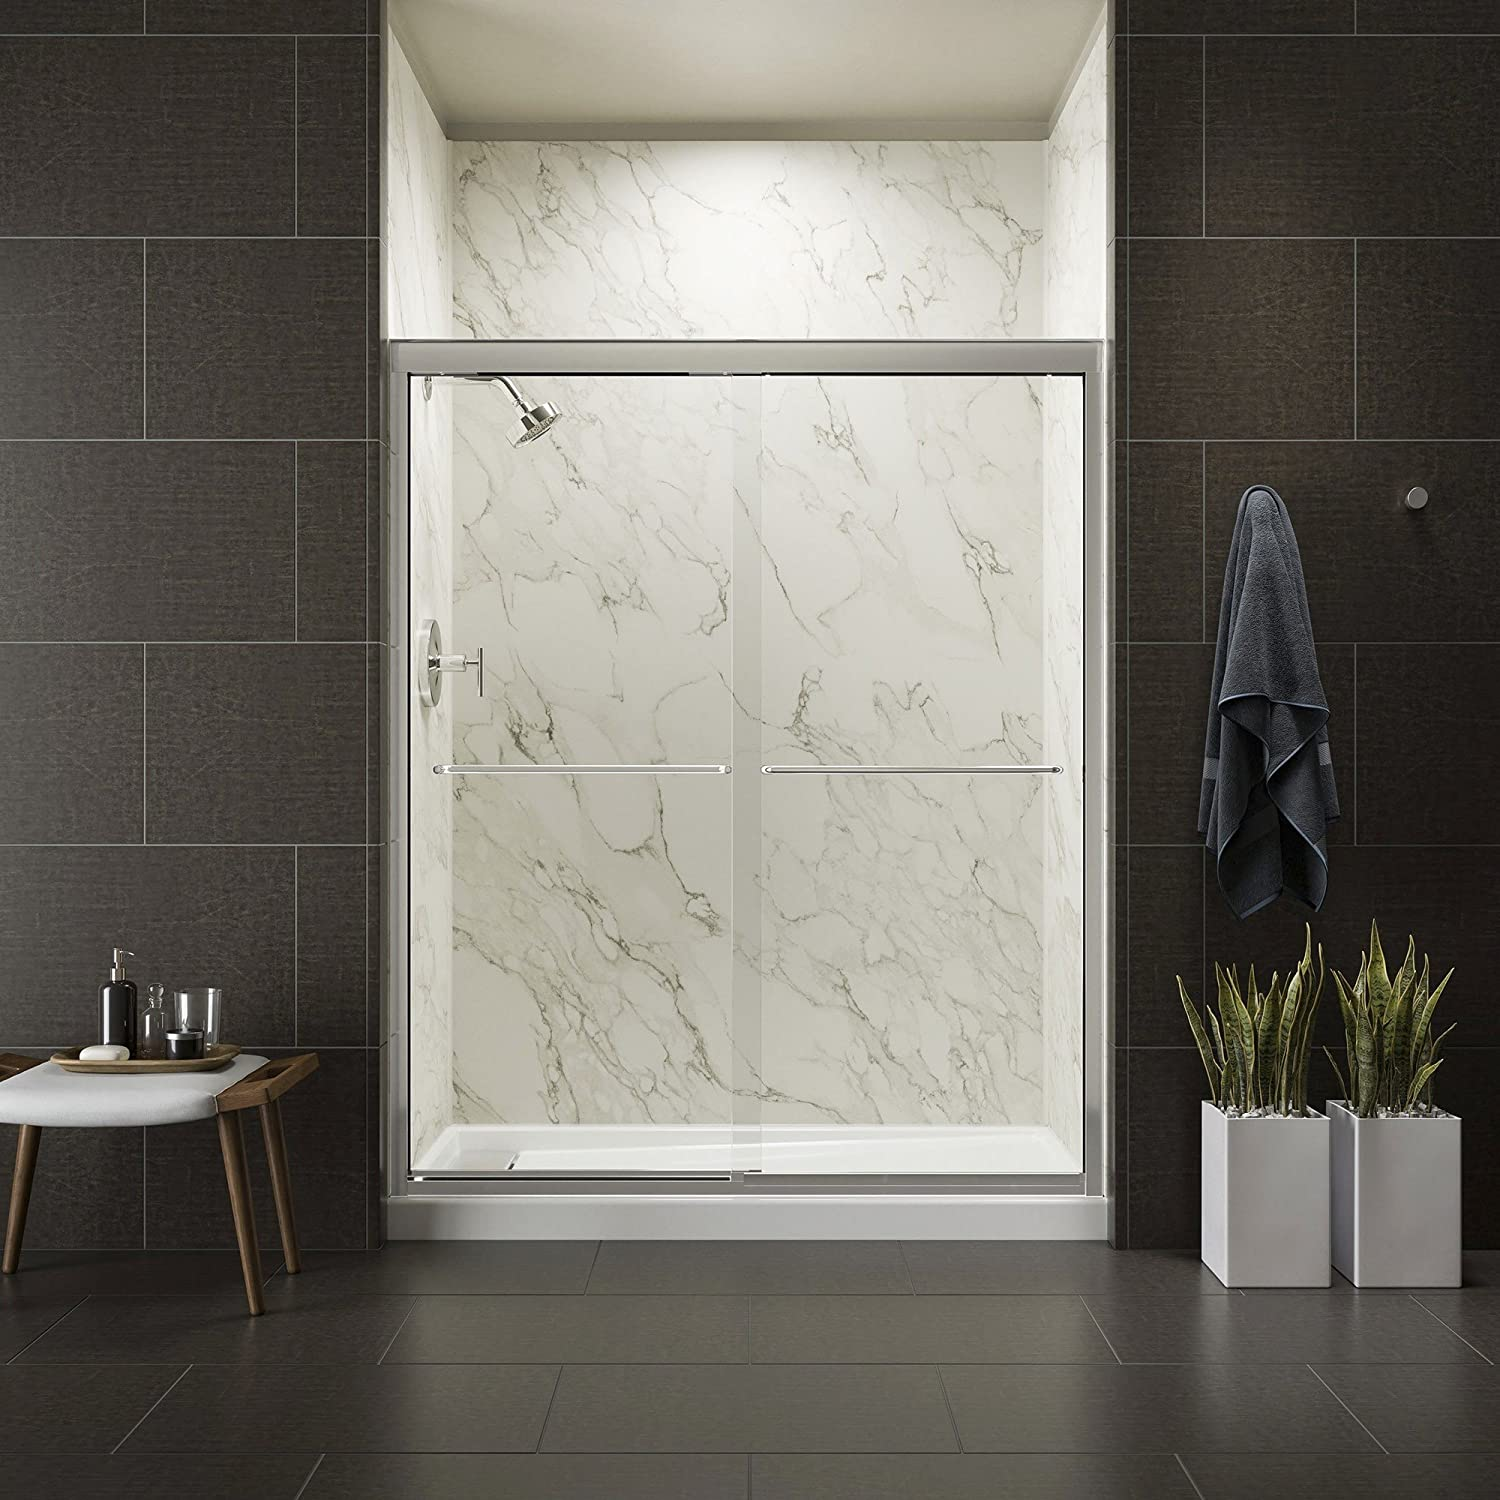 KOHLER K-702207-L-SHP Fluence 3 8-Inch Thick Glass Bypass Shower Door, Bright Polished Silver